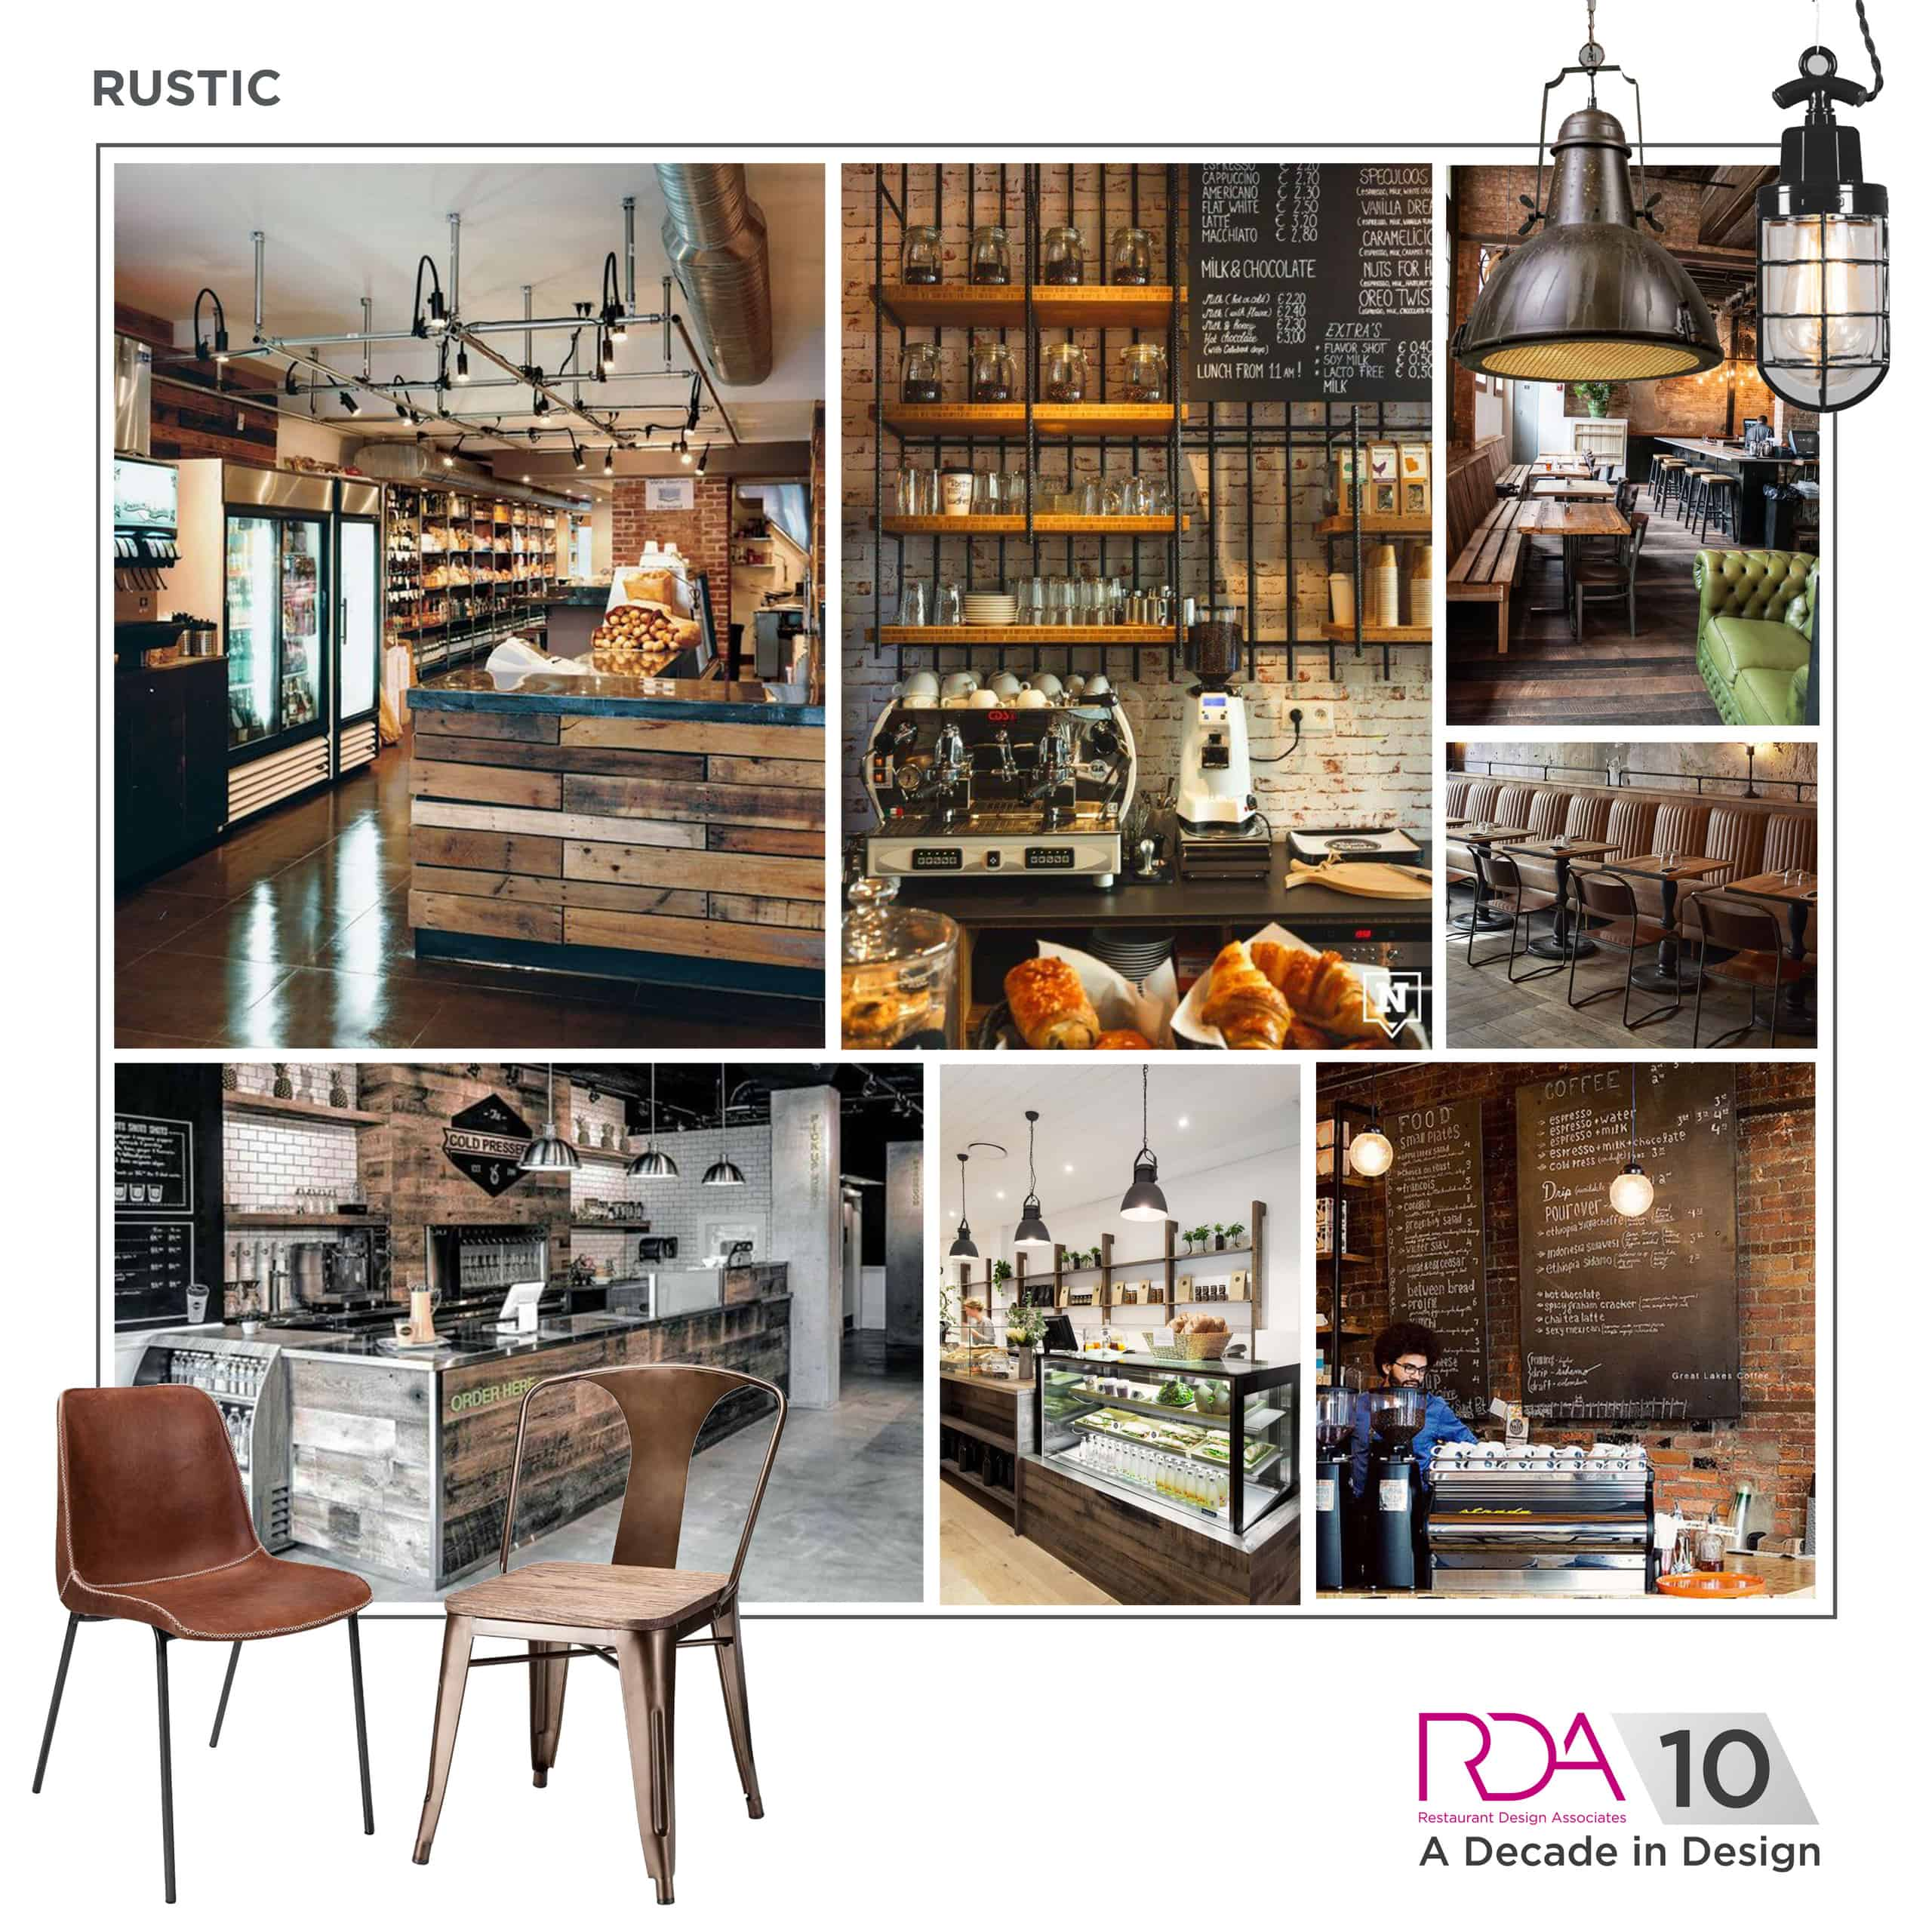 Restaurant design what you need to know rda